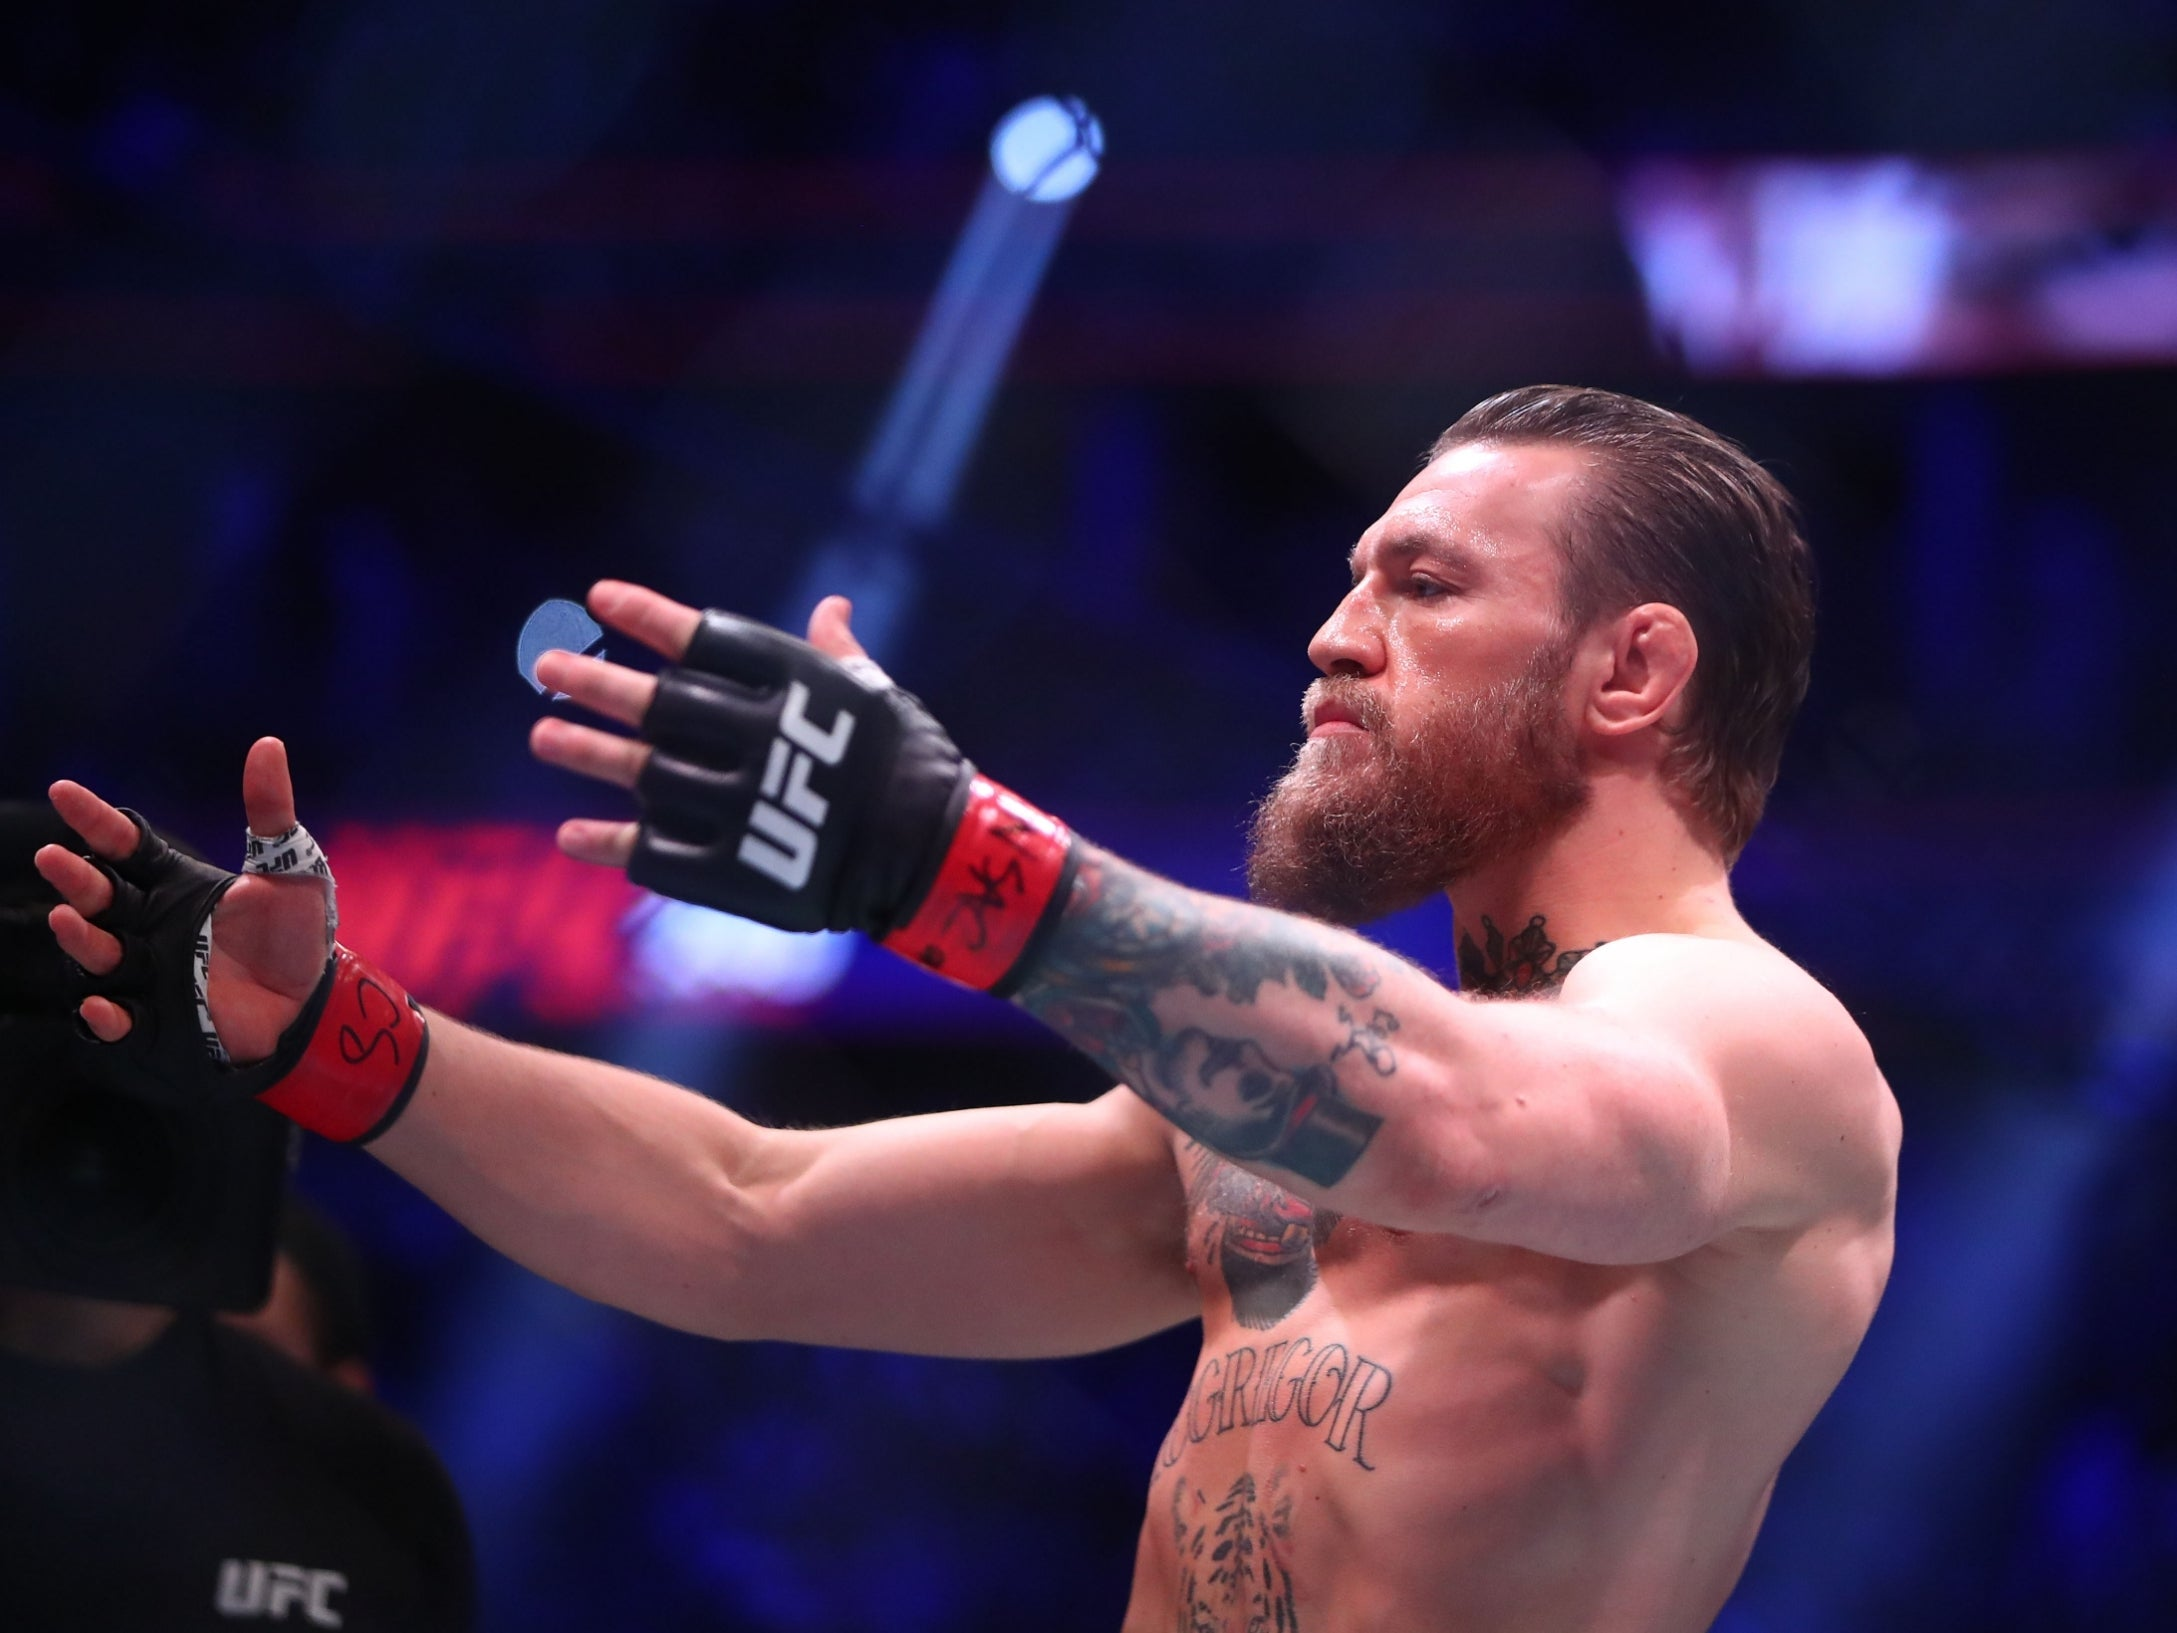 UFC: Khabib Nurmagomedov�s manager attacks �fake� Conor McGregor in bizarre tirade - The Independent